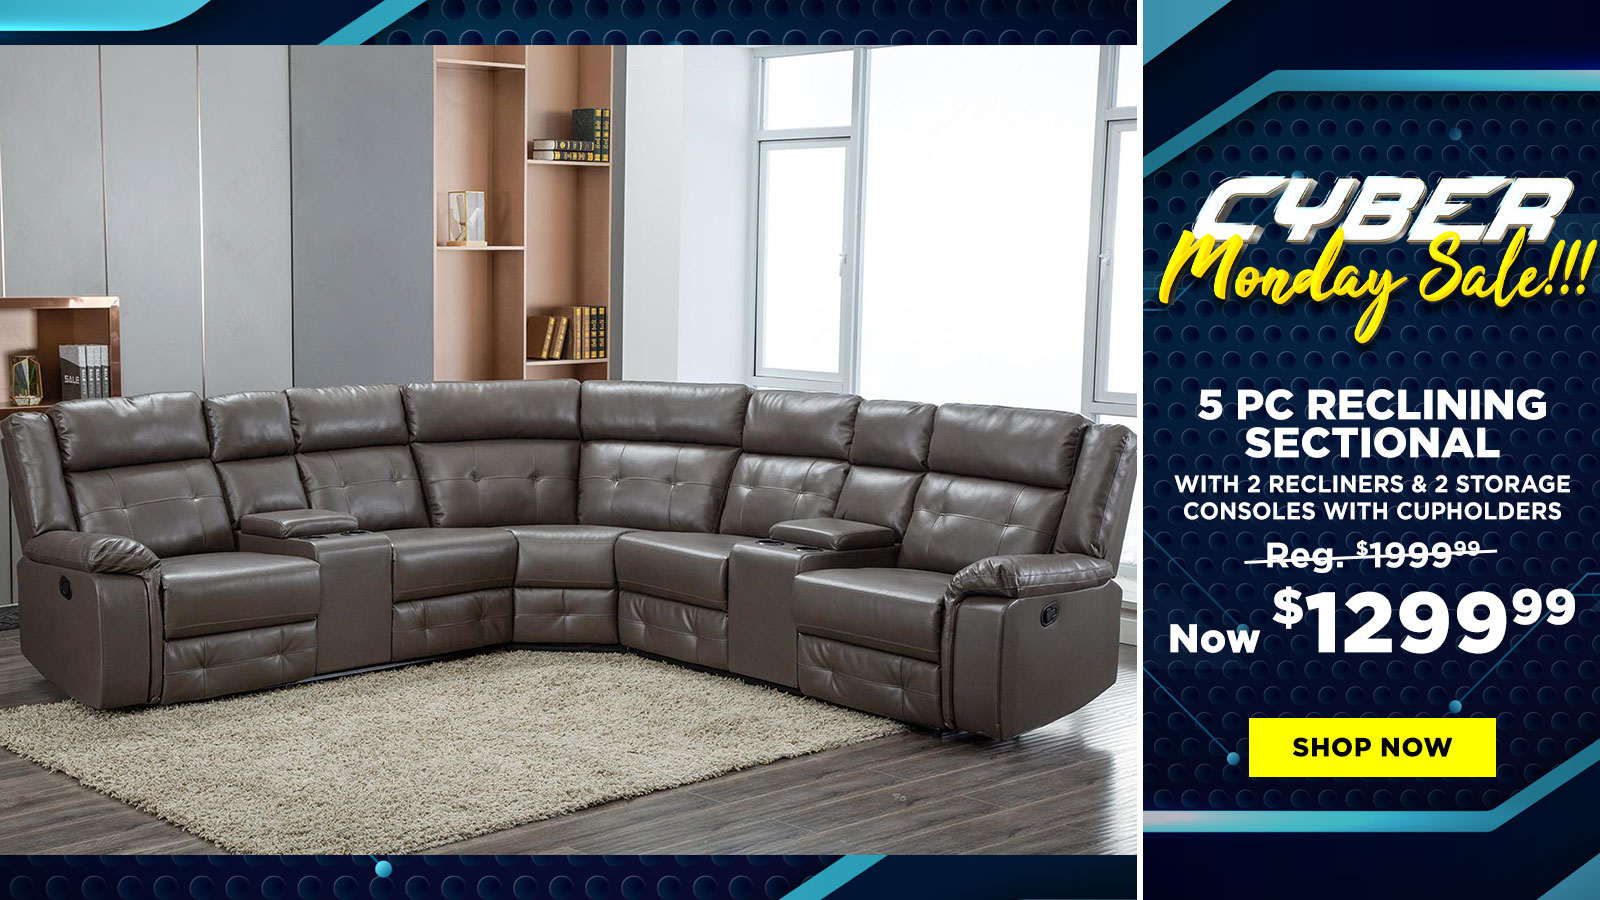 5 Pc Power Reclining Sectional $1299.99